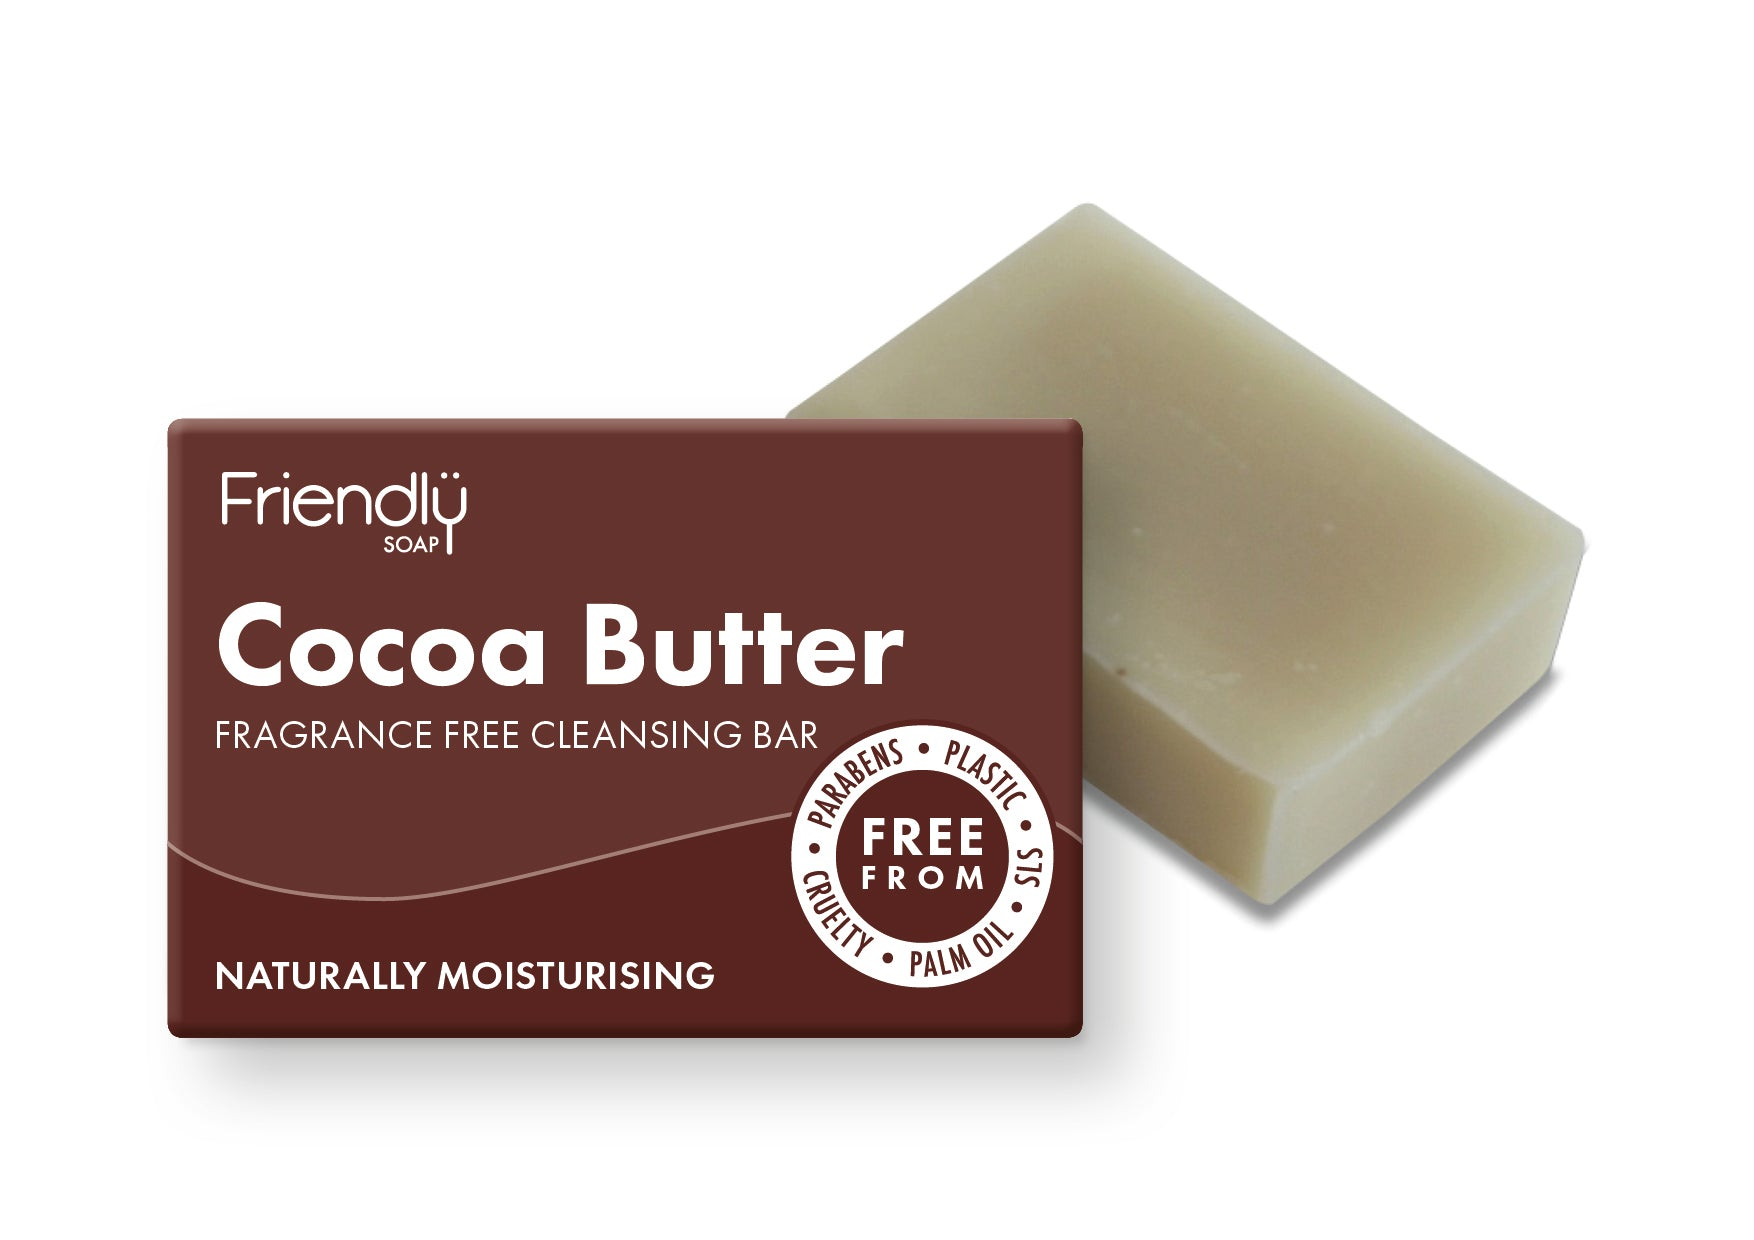 Cocoa Butter Facial Cleansing Bar - Smallkind